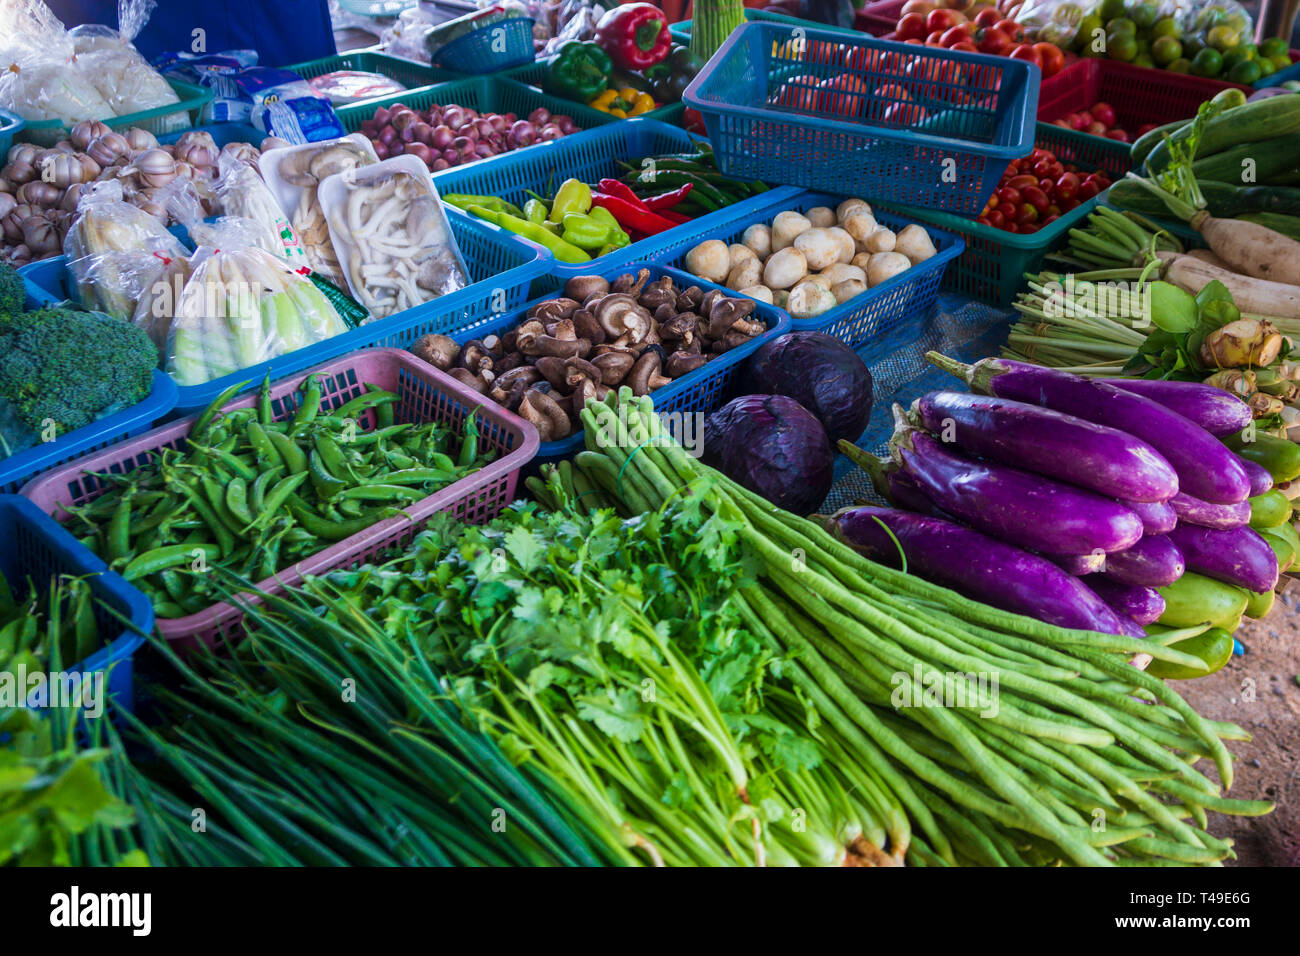 Thai Asian grocery bazaar with fresh vegetables - Stock Image